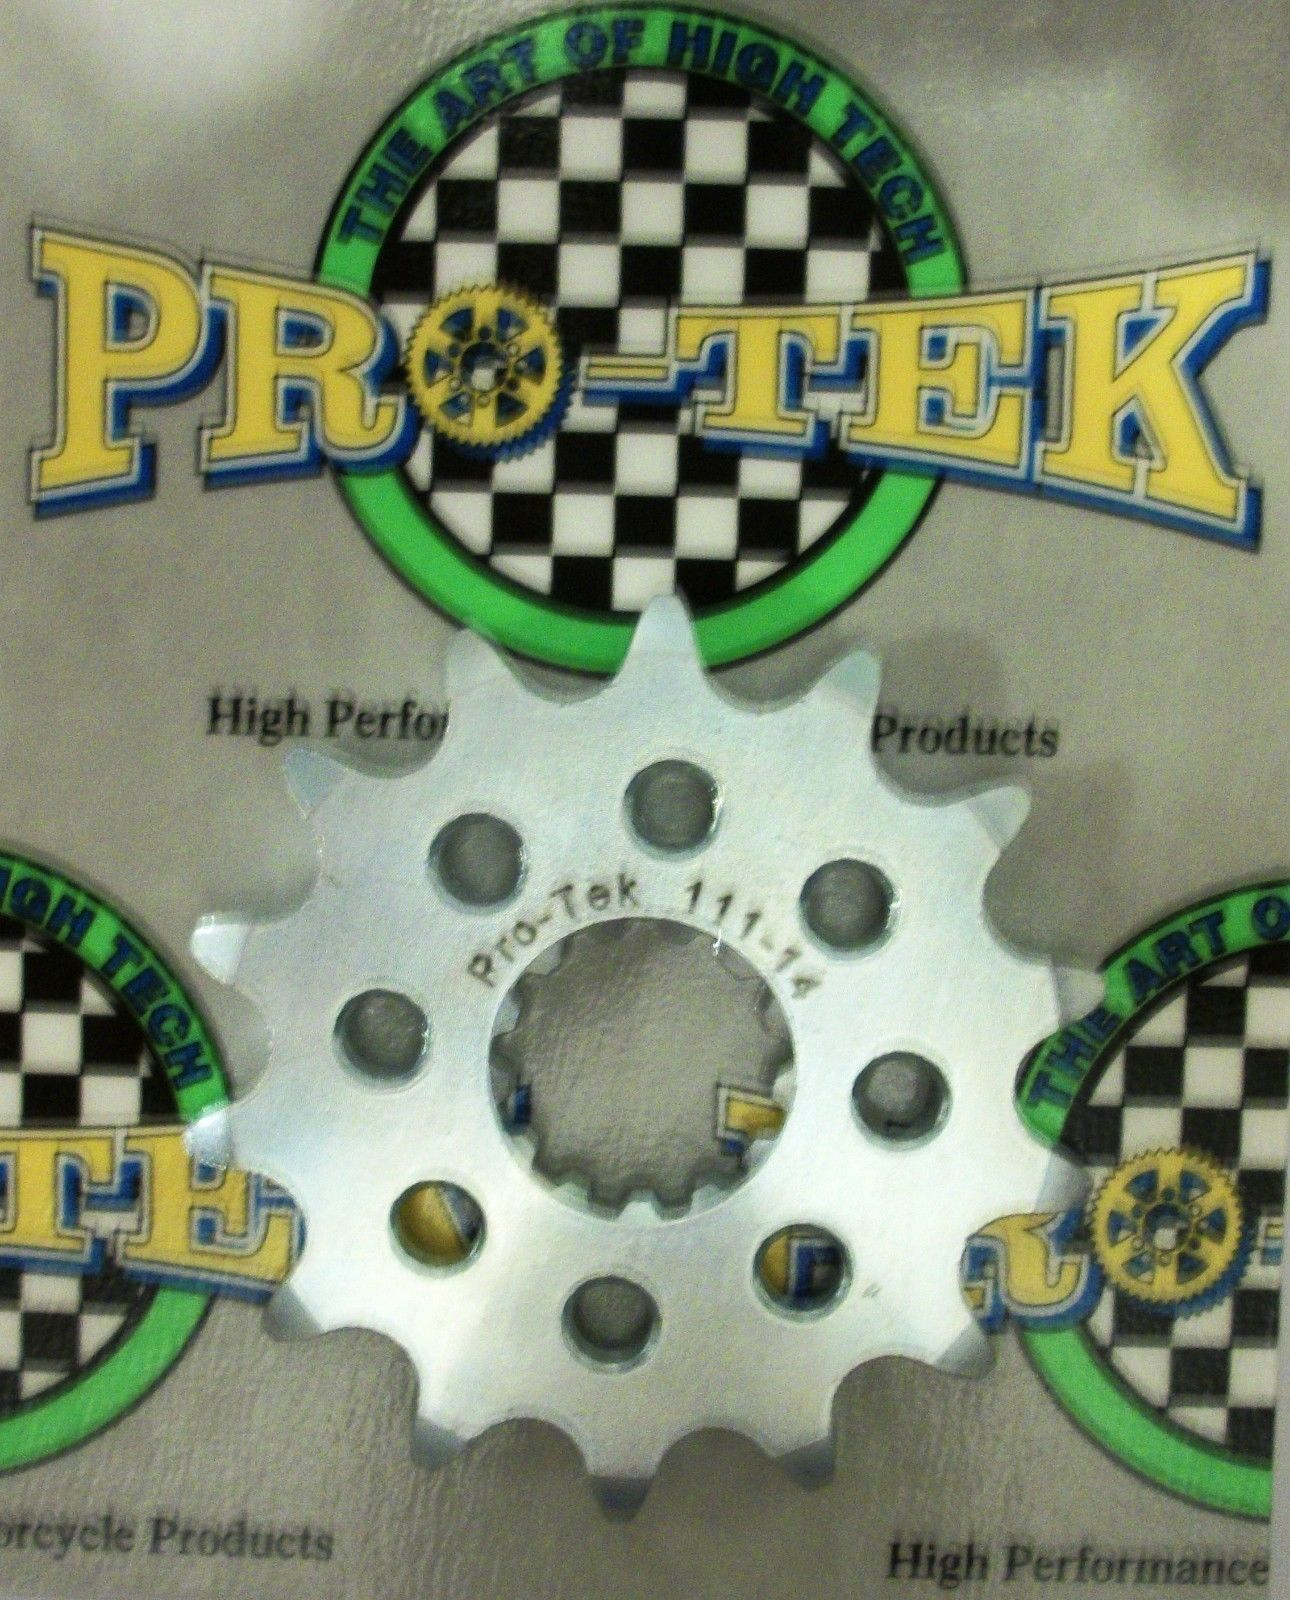 Primary image for Suzuki Front Sprocket 525 Pitch 13T 14T 15T 16T 17T 1999 2000 2001 2002 SV650/S